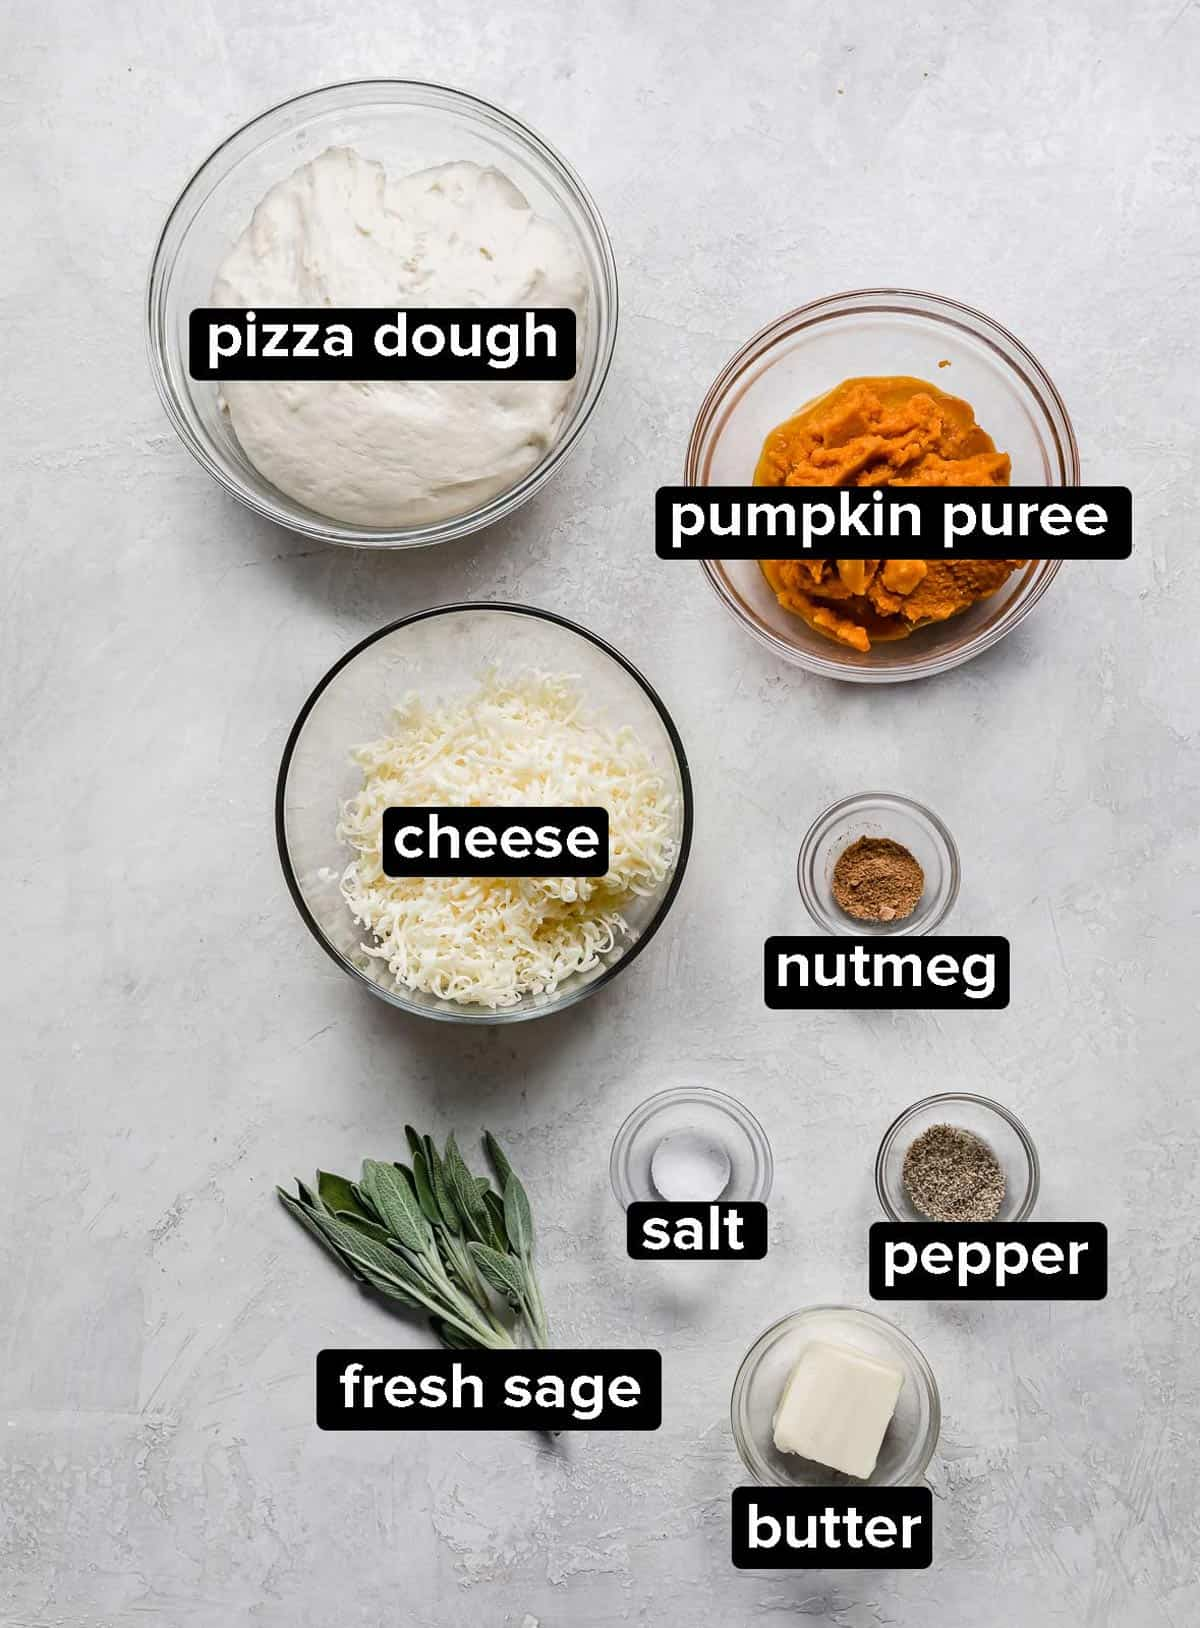 Pumpkin Pizza ingredients in glass bowls on a gray background.